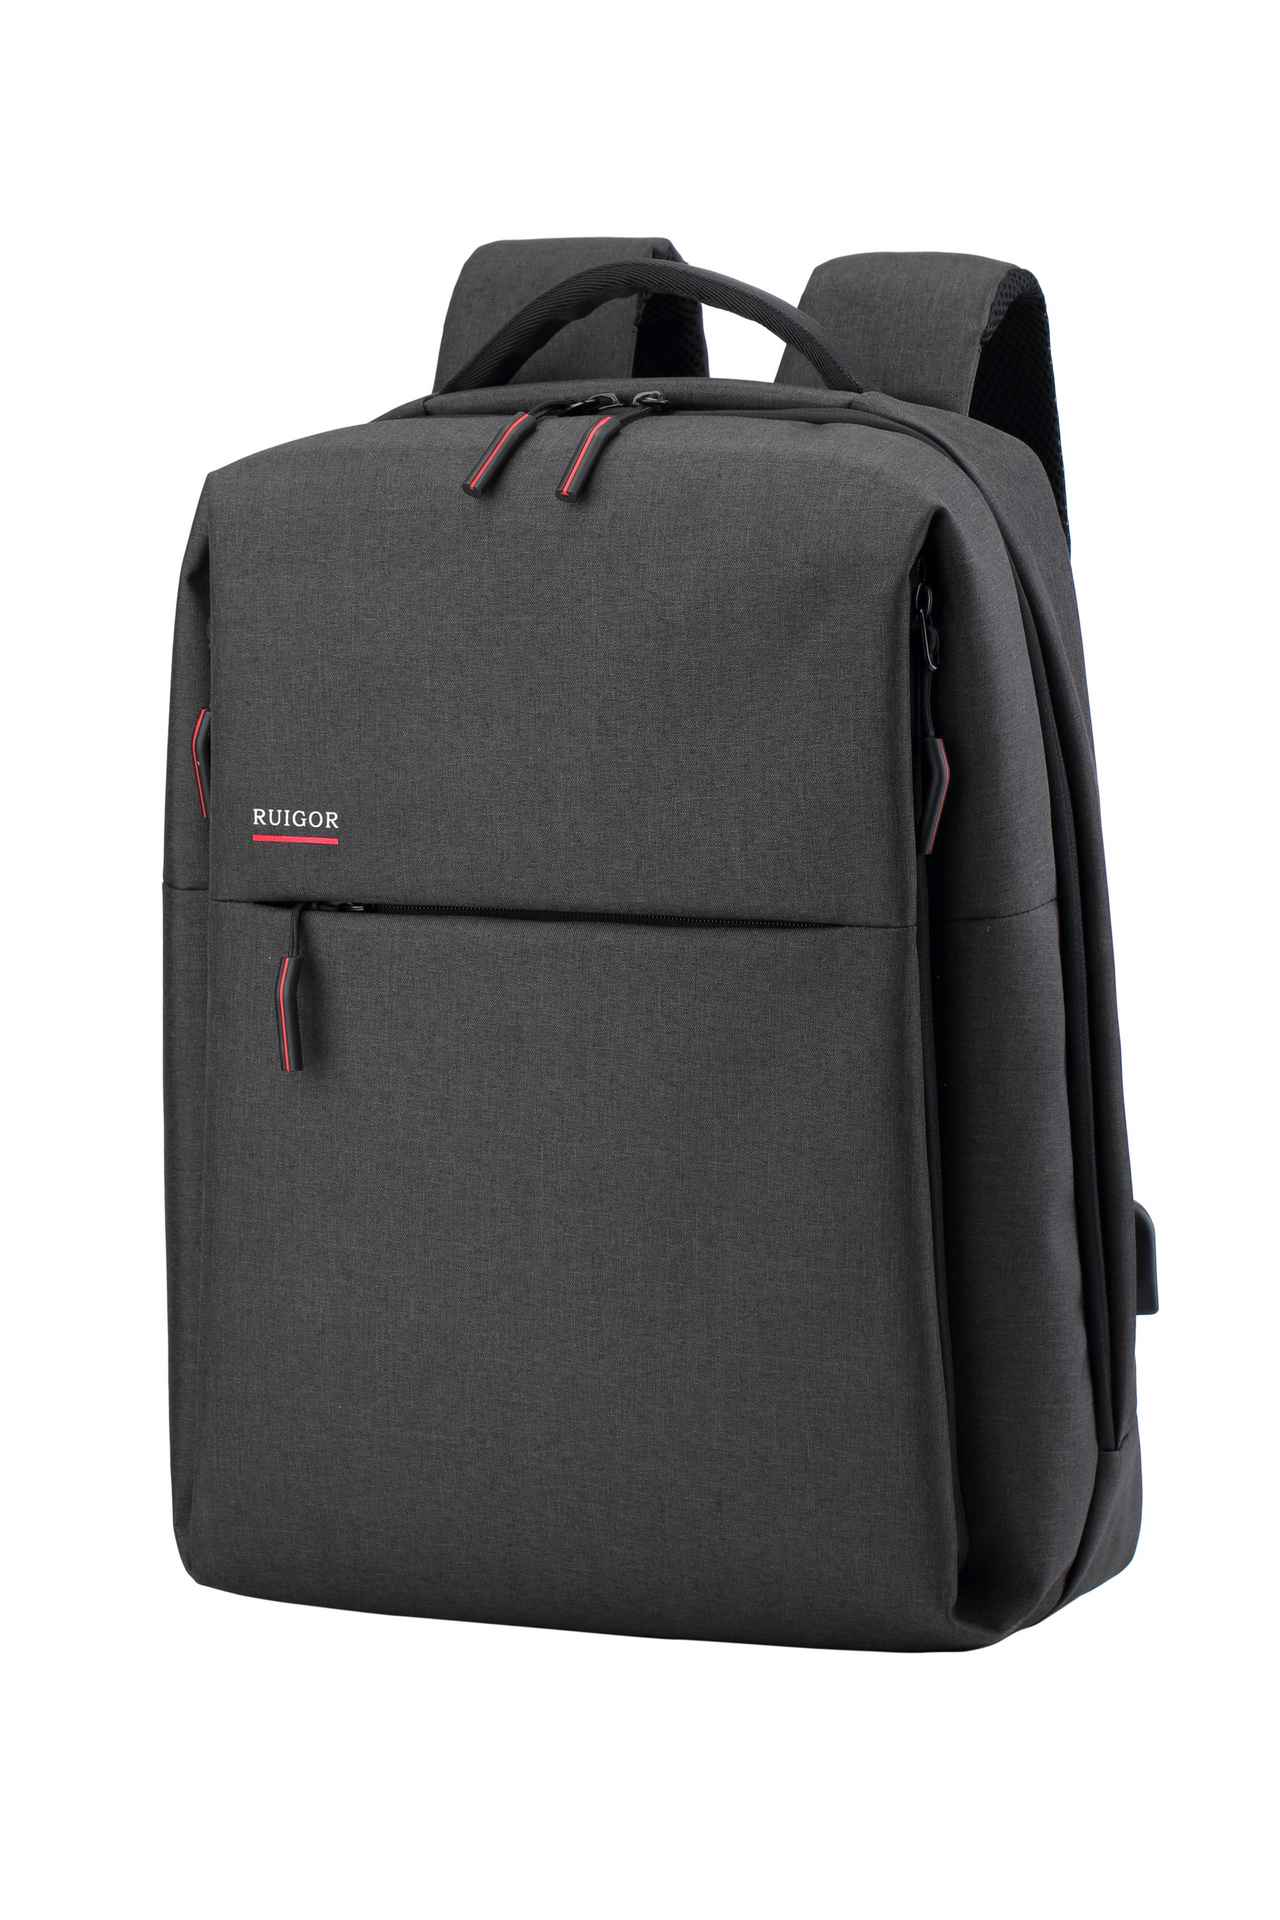 RUIGOR CITY 56 Laptop Backpack Dark Grey - Unique Style